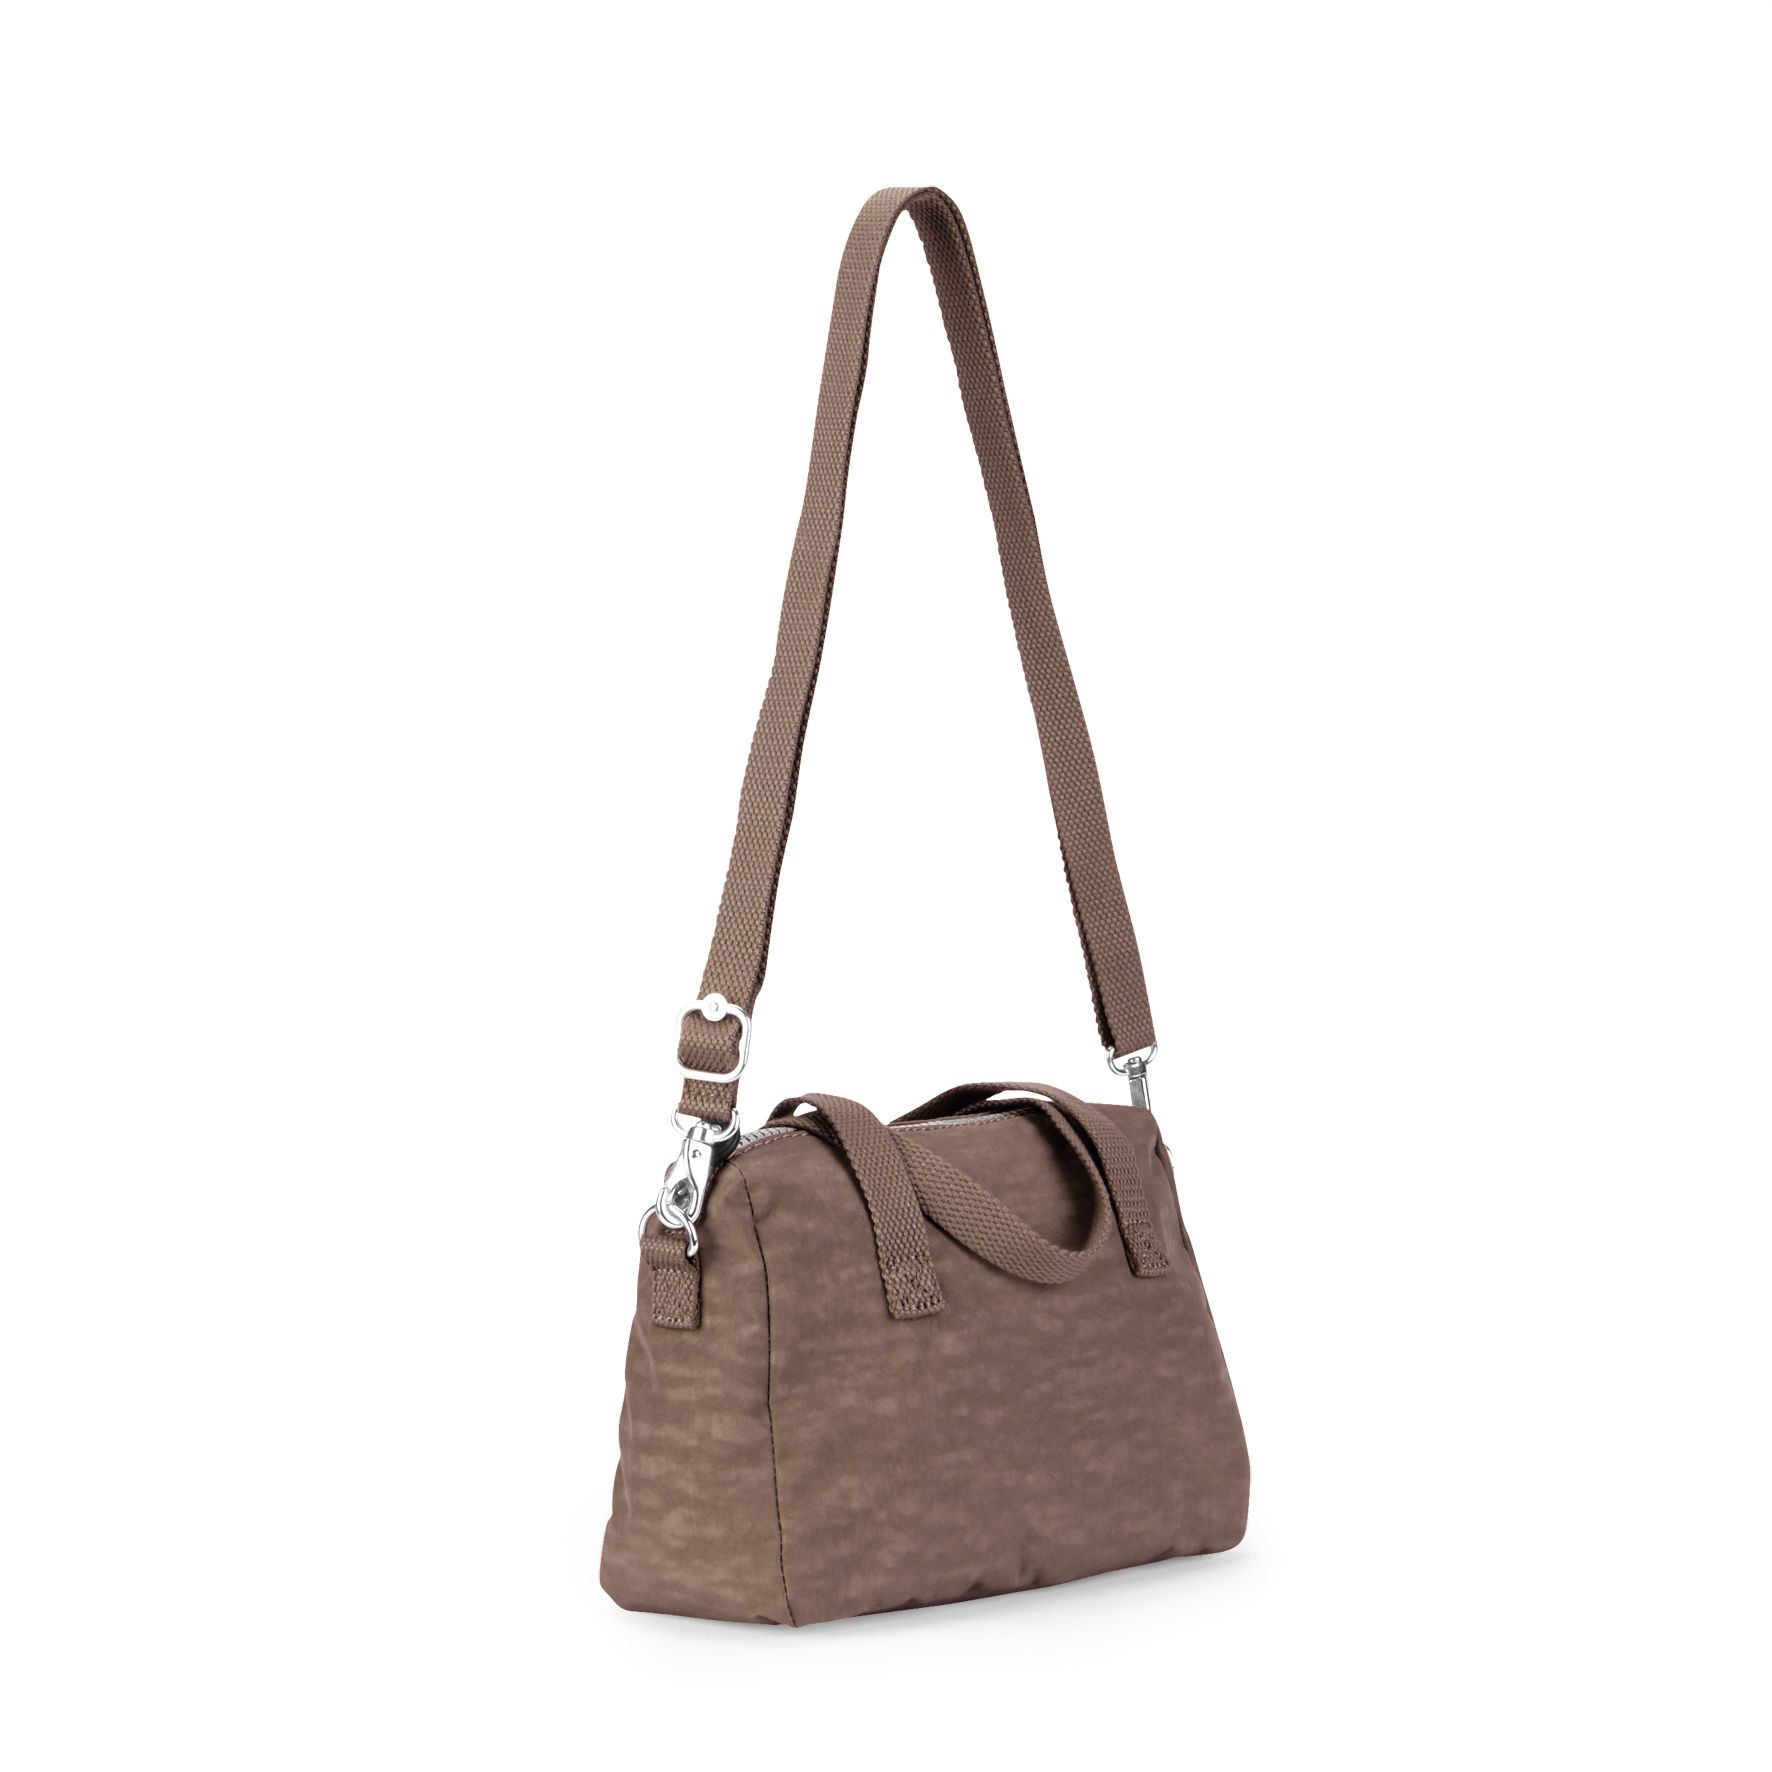 Emoli shoulder bag